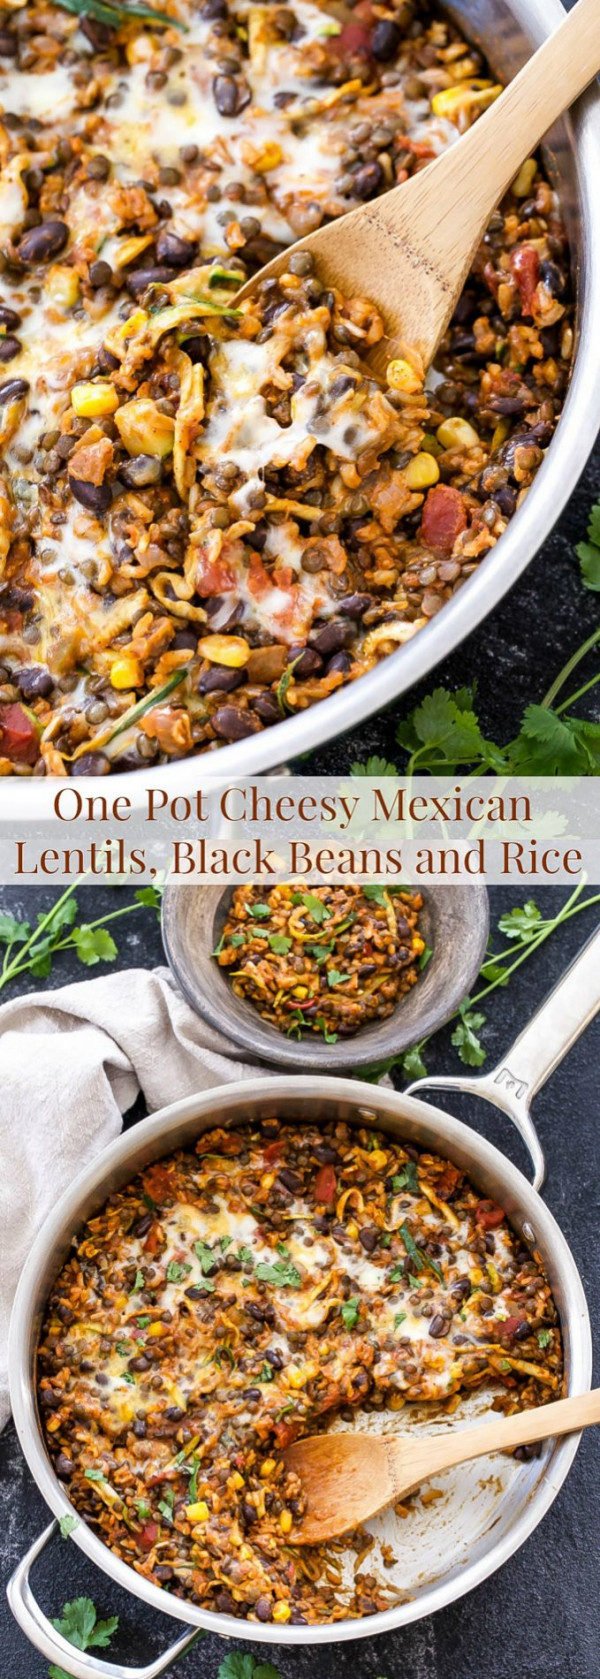 A healthy, vegetarian, gluten free dinner the whole family will love! You won't miss the meat in this easy to make, One Pot Cheesy Mexican Lentils, Black Beans and Rice!